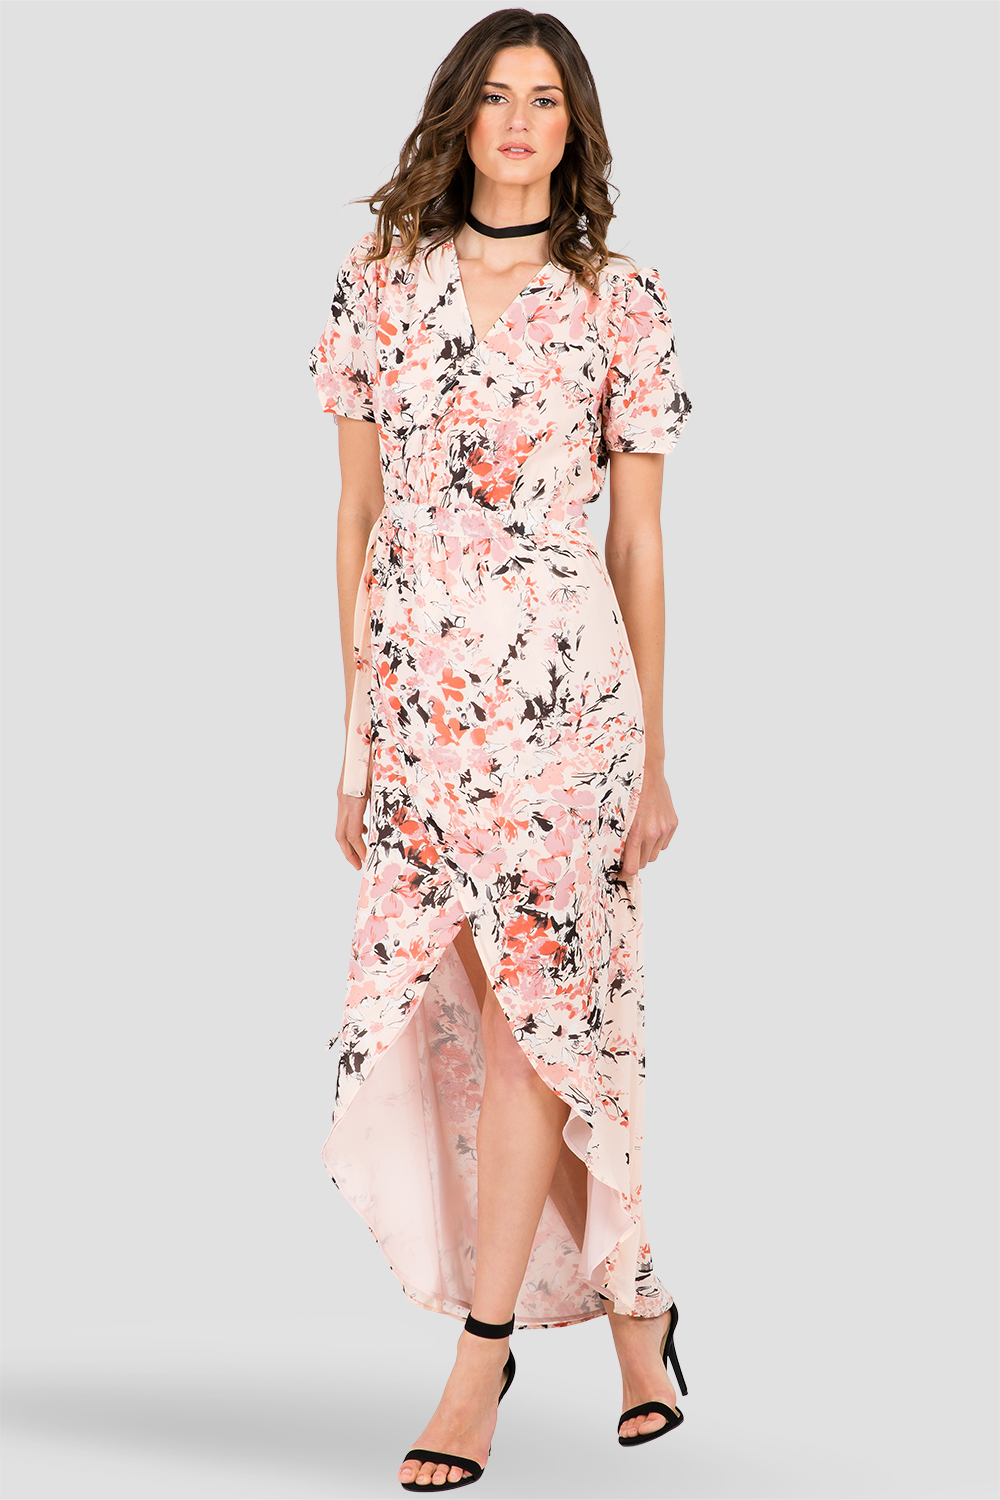 Standards & Practices Women's Short Sleeve V-Neck Maxi Dress, Peach Pink Floral Print